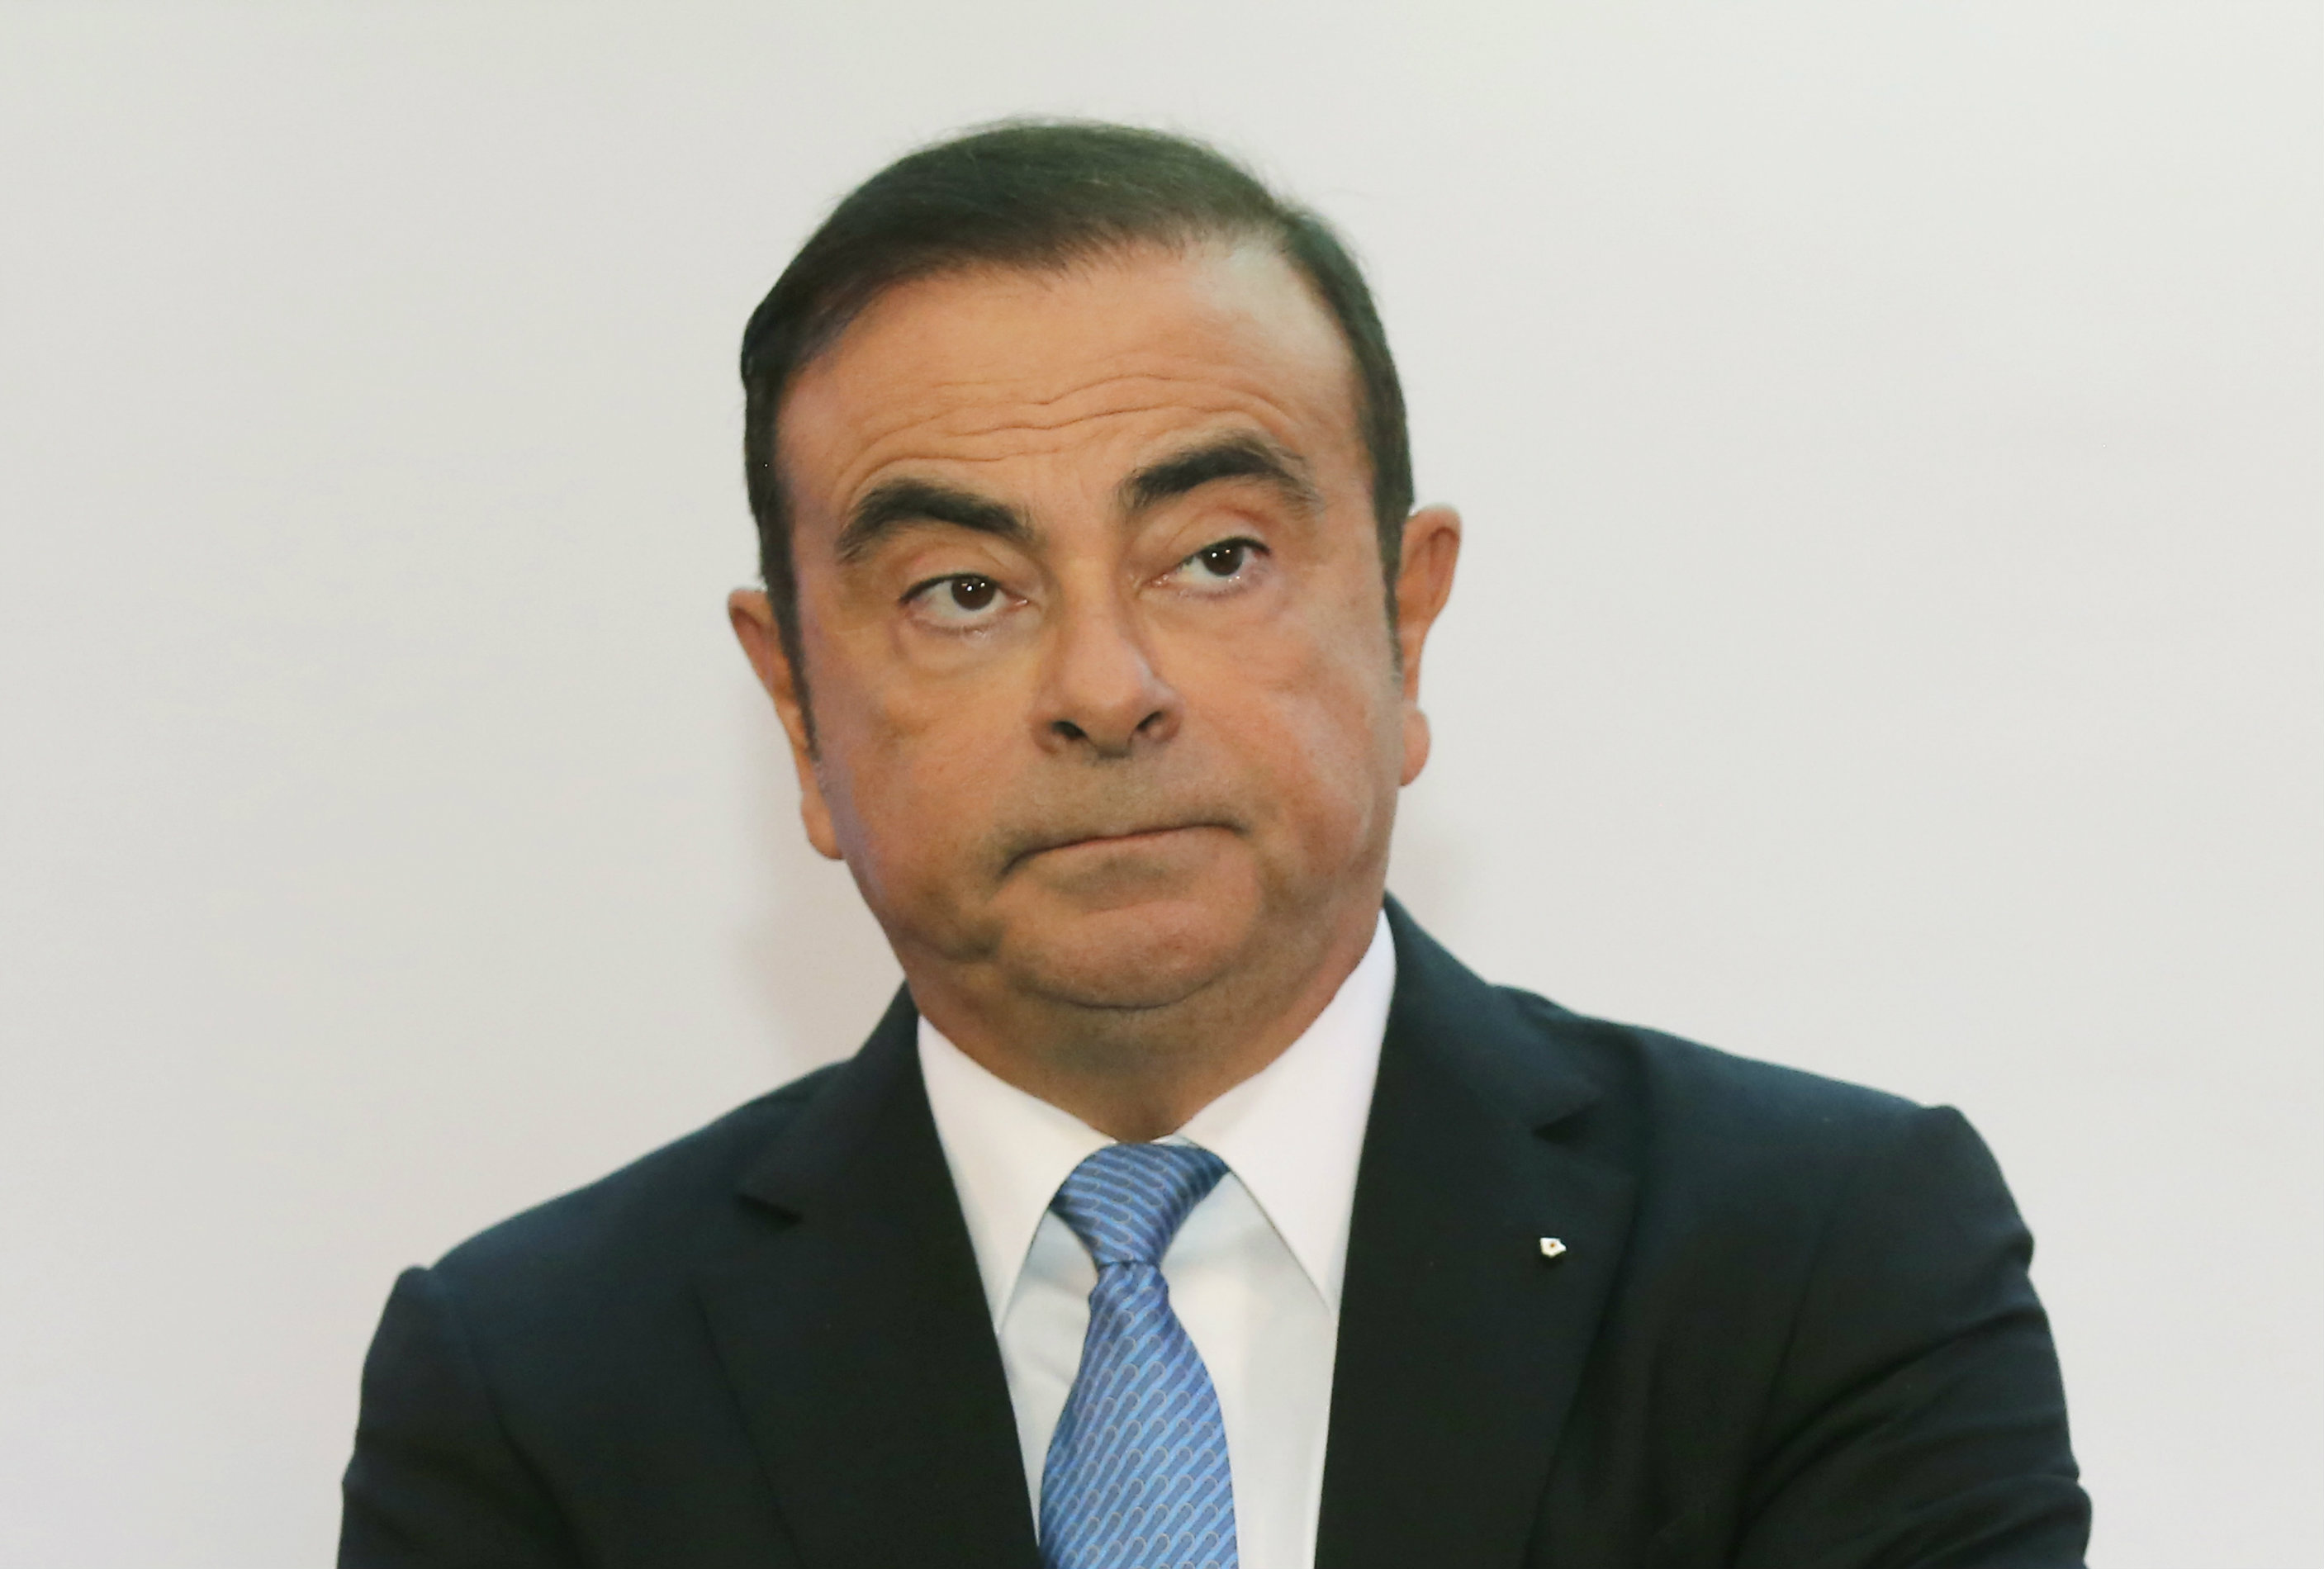 Carlos Ghosn told the court that he had the option to leave Nissan but had decided to stay on.